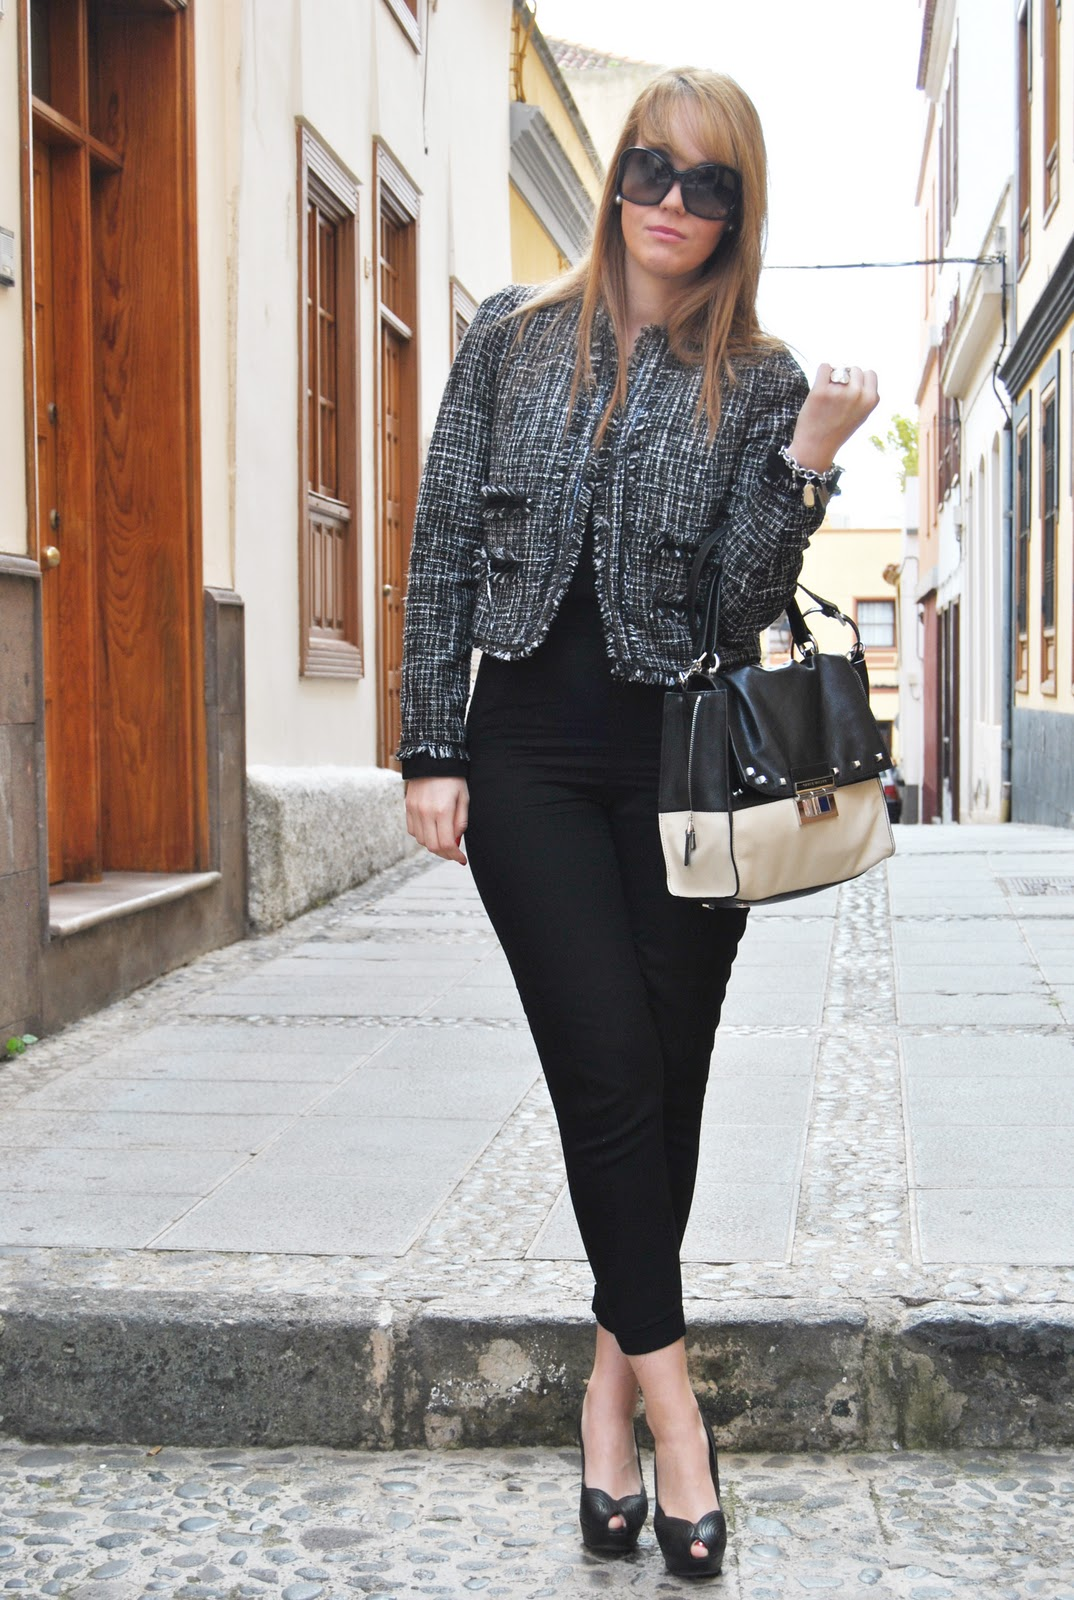 nery hdez, tweed, chanel inspiration tweed, karen millen bag